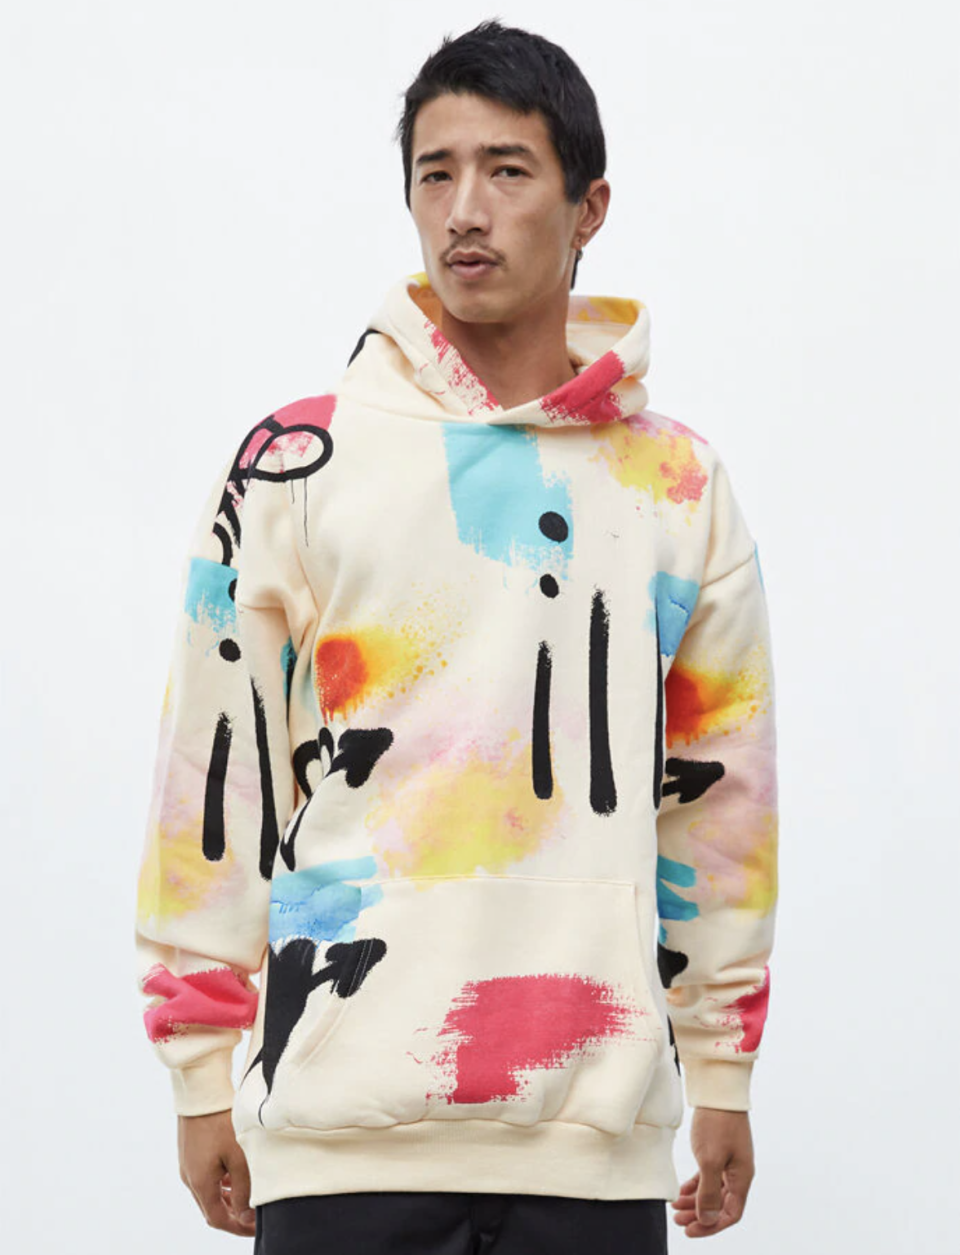 """<p><strong>PacSun</strong></p><p>pacsun.com</p><p><strong>$49.95</strong></p><p><a href=""""https://go.redirectingat.com?id=74968X1596630&url=https%3A%2F%2Fwww.pacsun.com%2Fpacsun%2Fscrap-art-hoodie-0389221.html&sref=https%3A%2F%2Fwww.seventeen.com%2Flove%2Fdating-advice%2Fg30107520%2Fone-year-anniversary-gifts-for-him-boyfriend%2F"""" rel=""""nofollow noopener"""" target=""""_blank"""" data-ylk=""""slk:Shop Now"""" class=""""link rapid-noclick-resp"""">Shop Now</a></p><p>Buy this abstract pullover for him, then steal it for yourself. Everyone wins!</p>"""